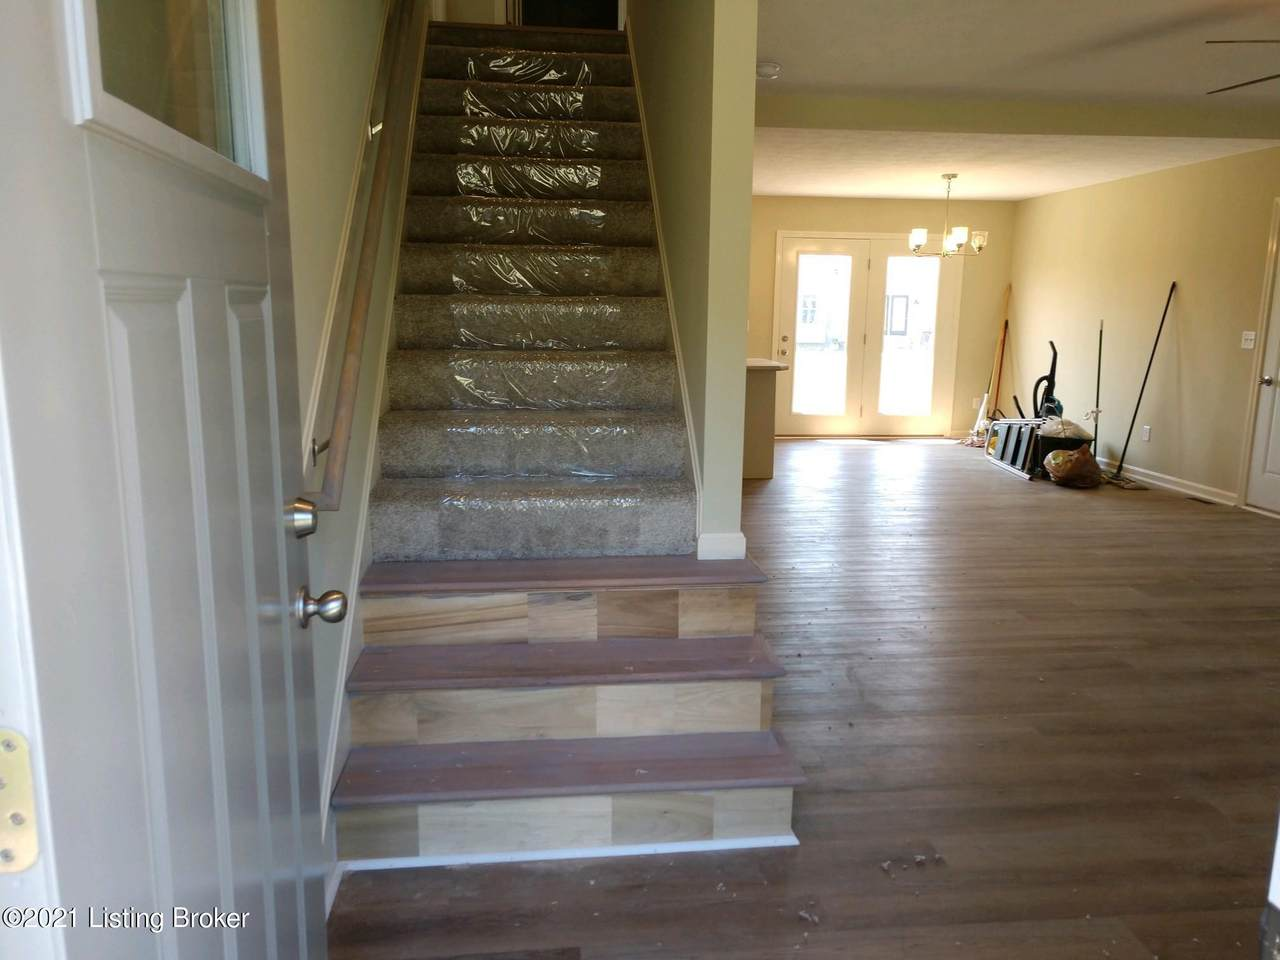 3008 Frank Lee Ave - Photo 1